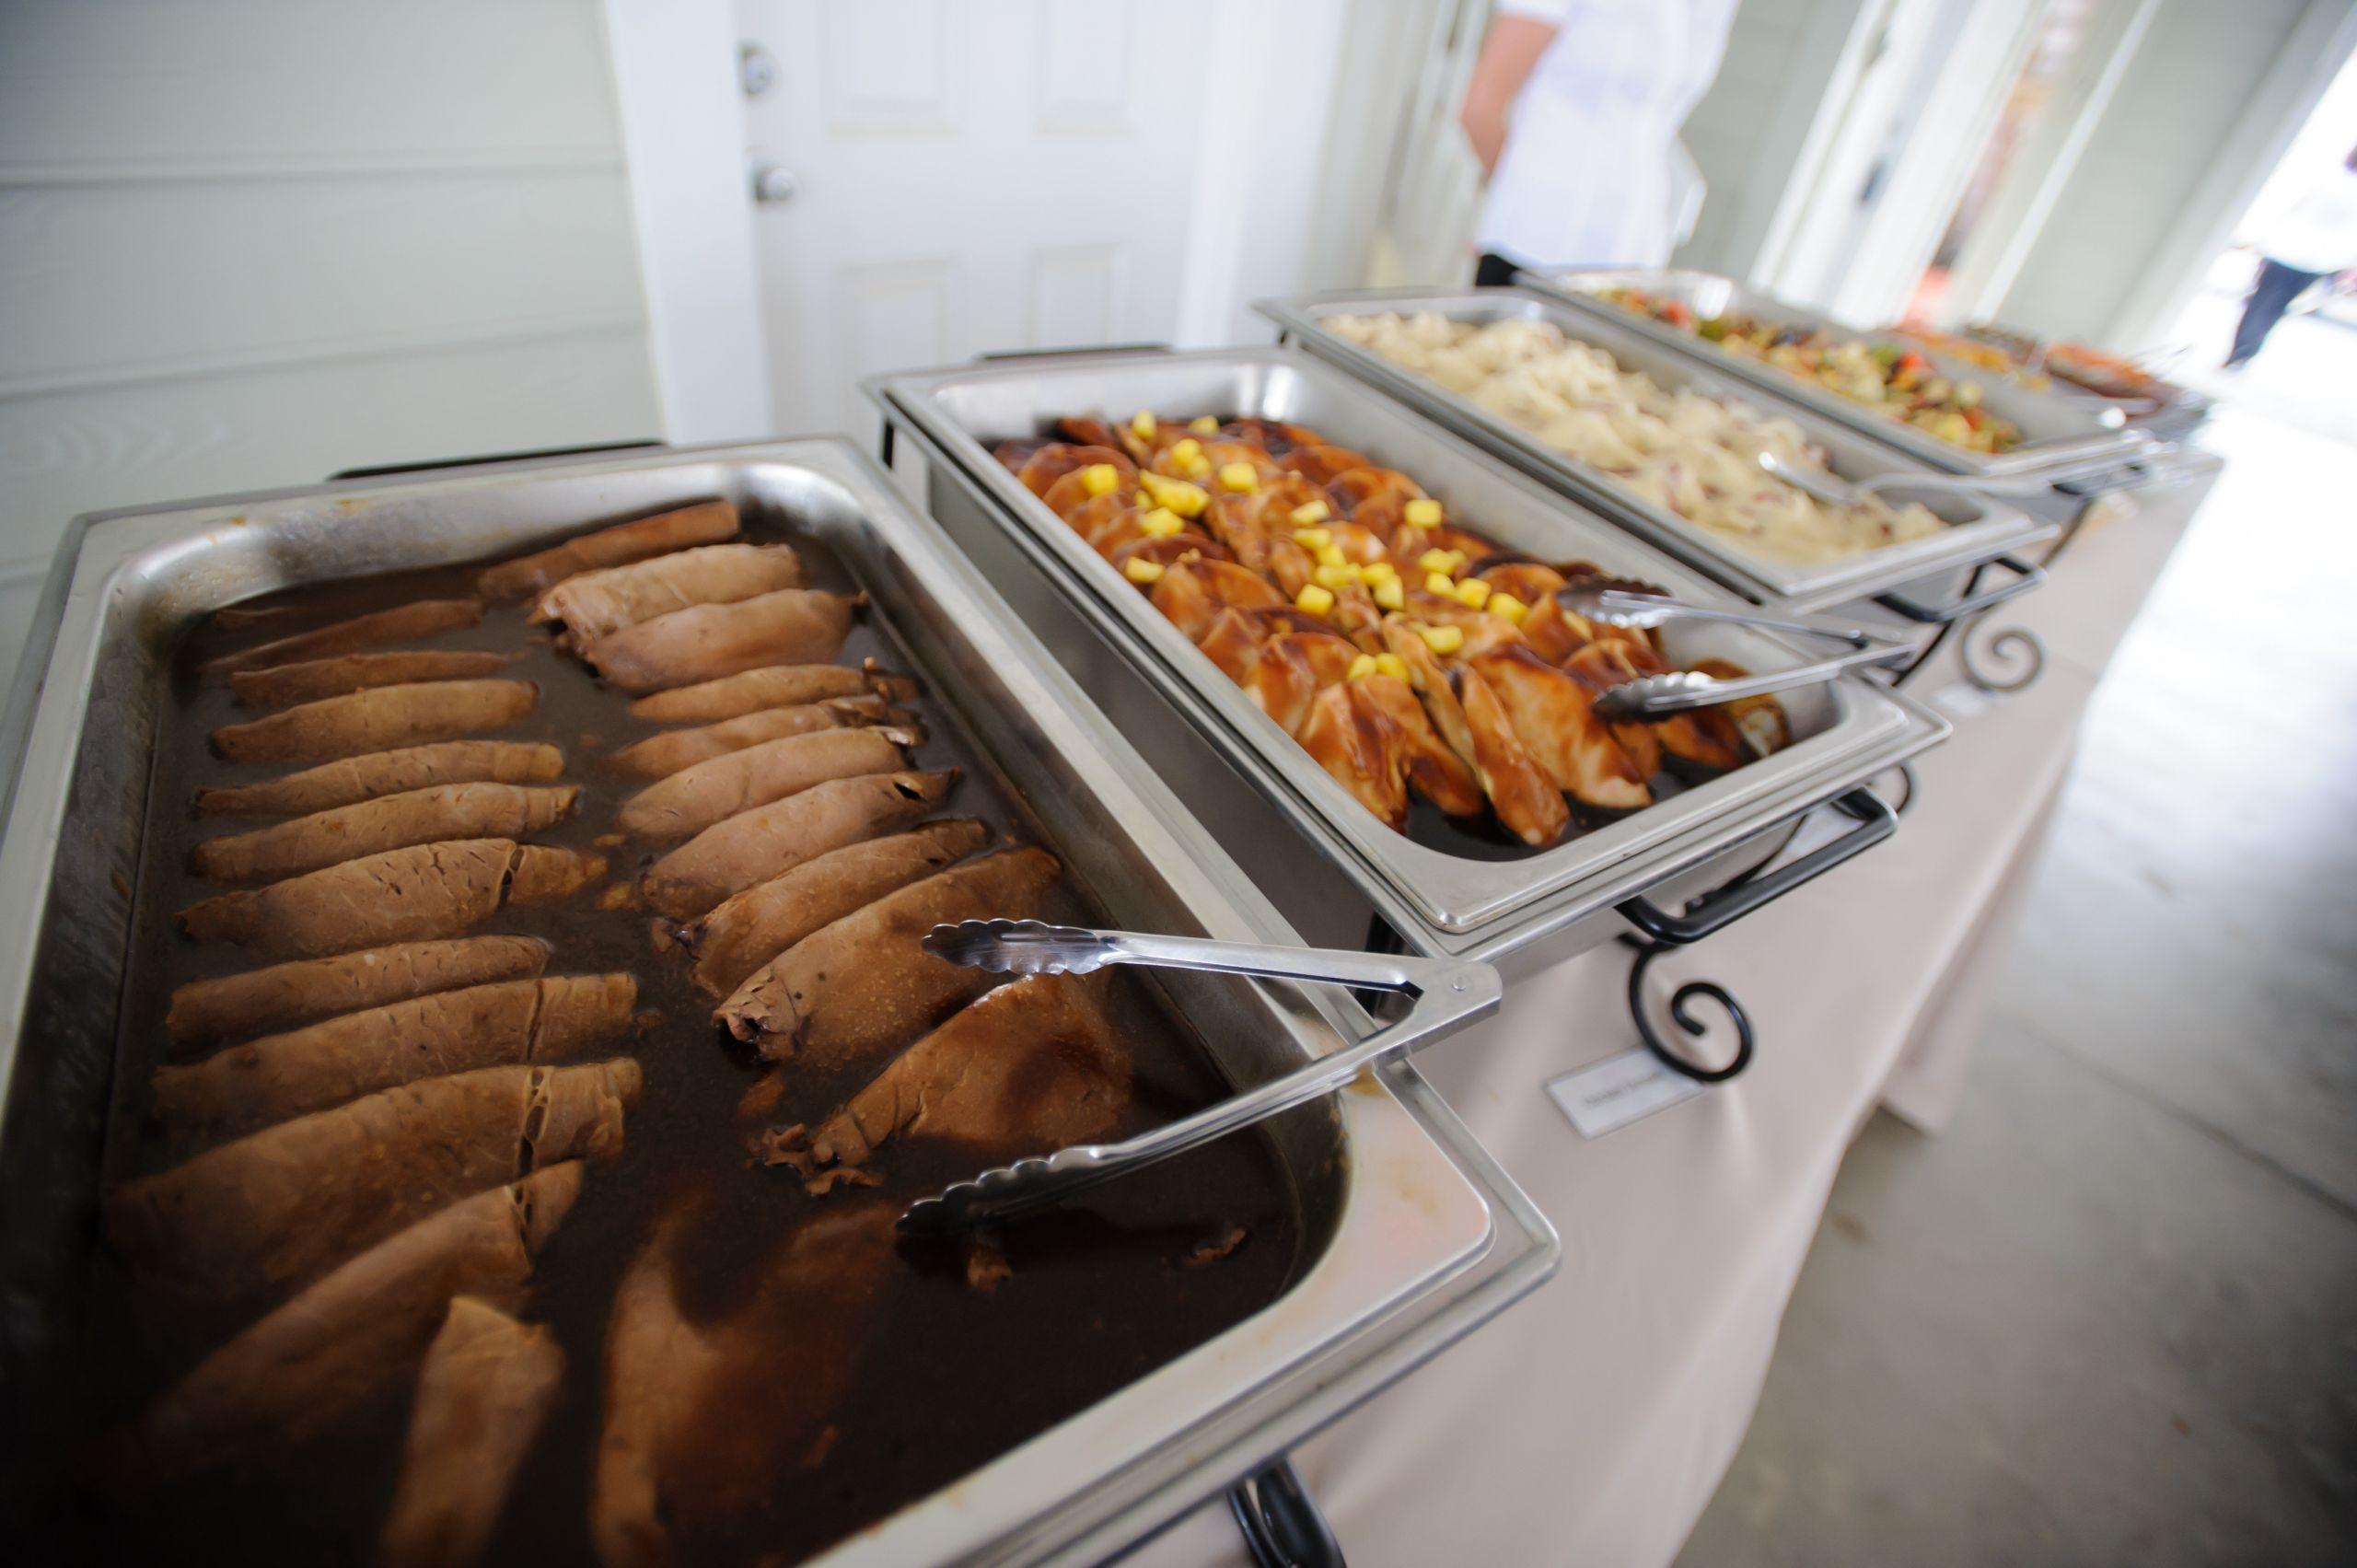 Beach Party Food Menu Ideas  Corporate Party Catering Menus ART Catering & Events